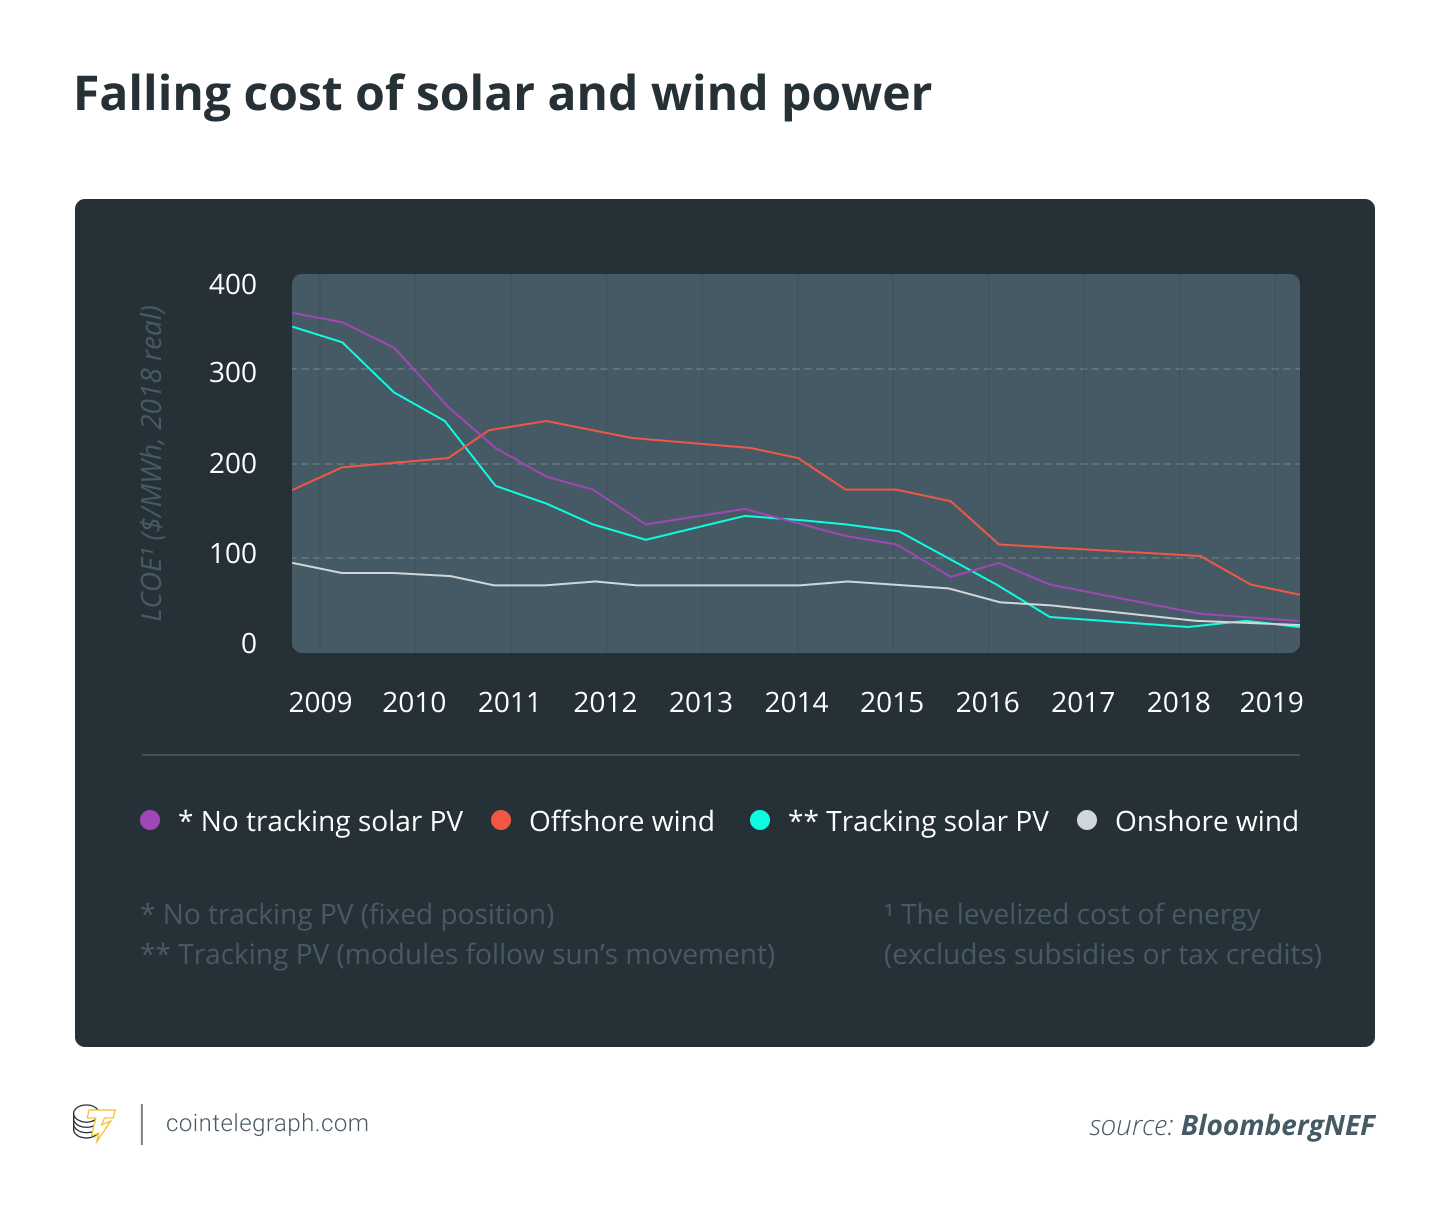 Falling cost of solar wind power